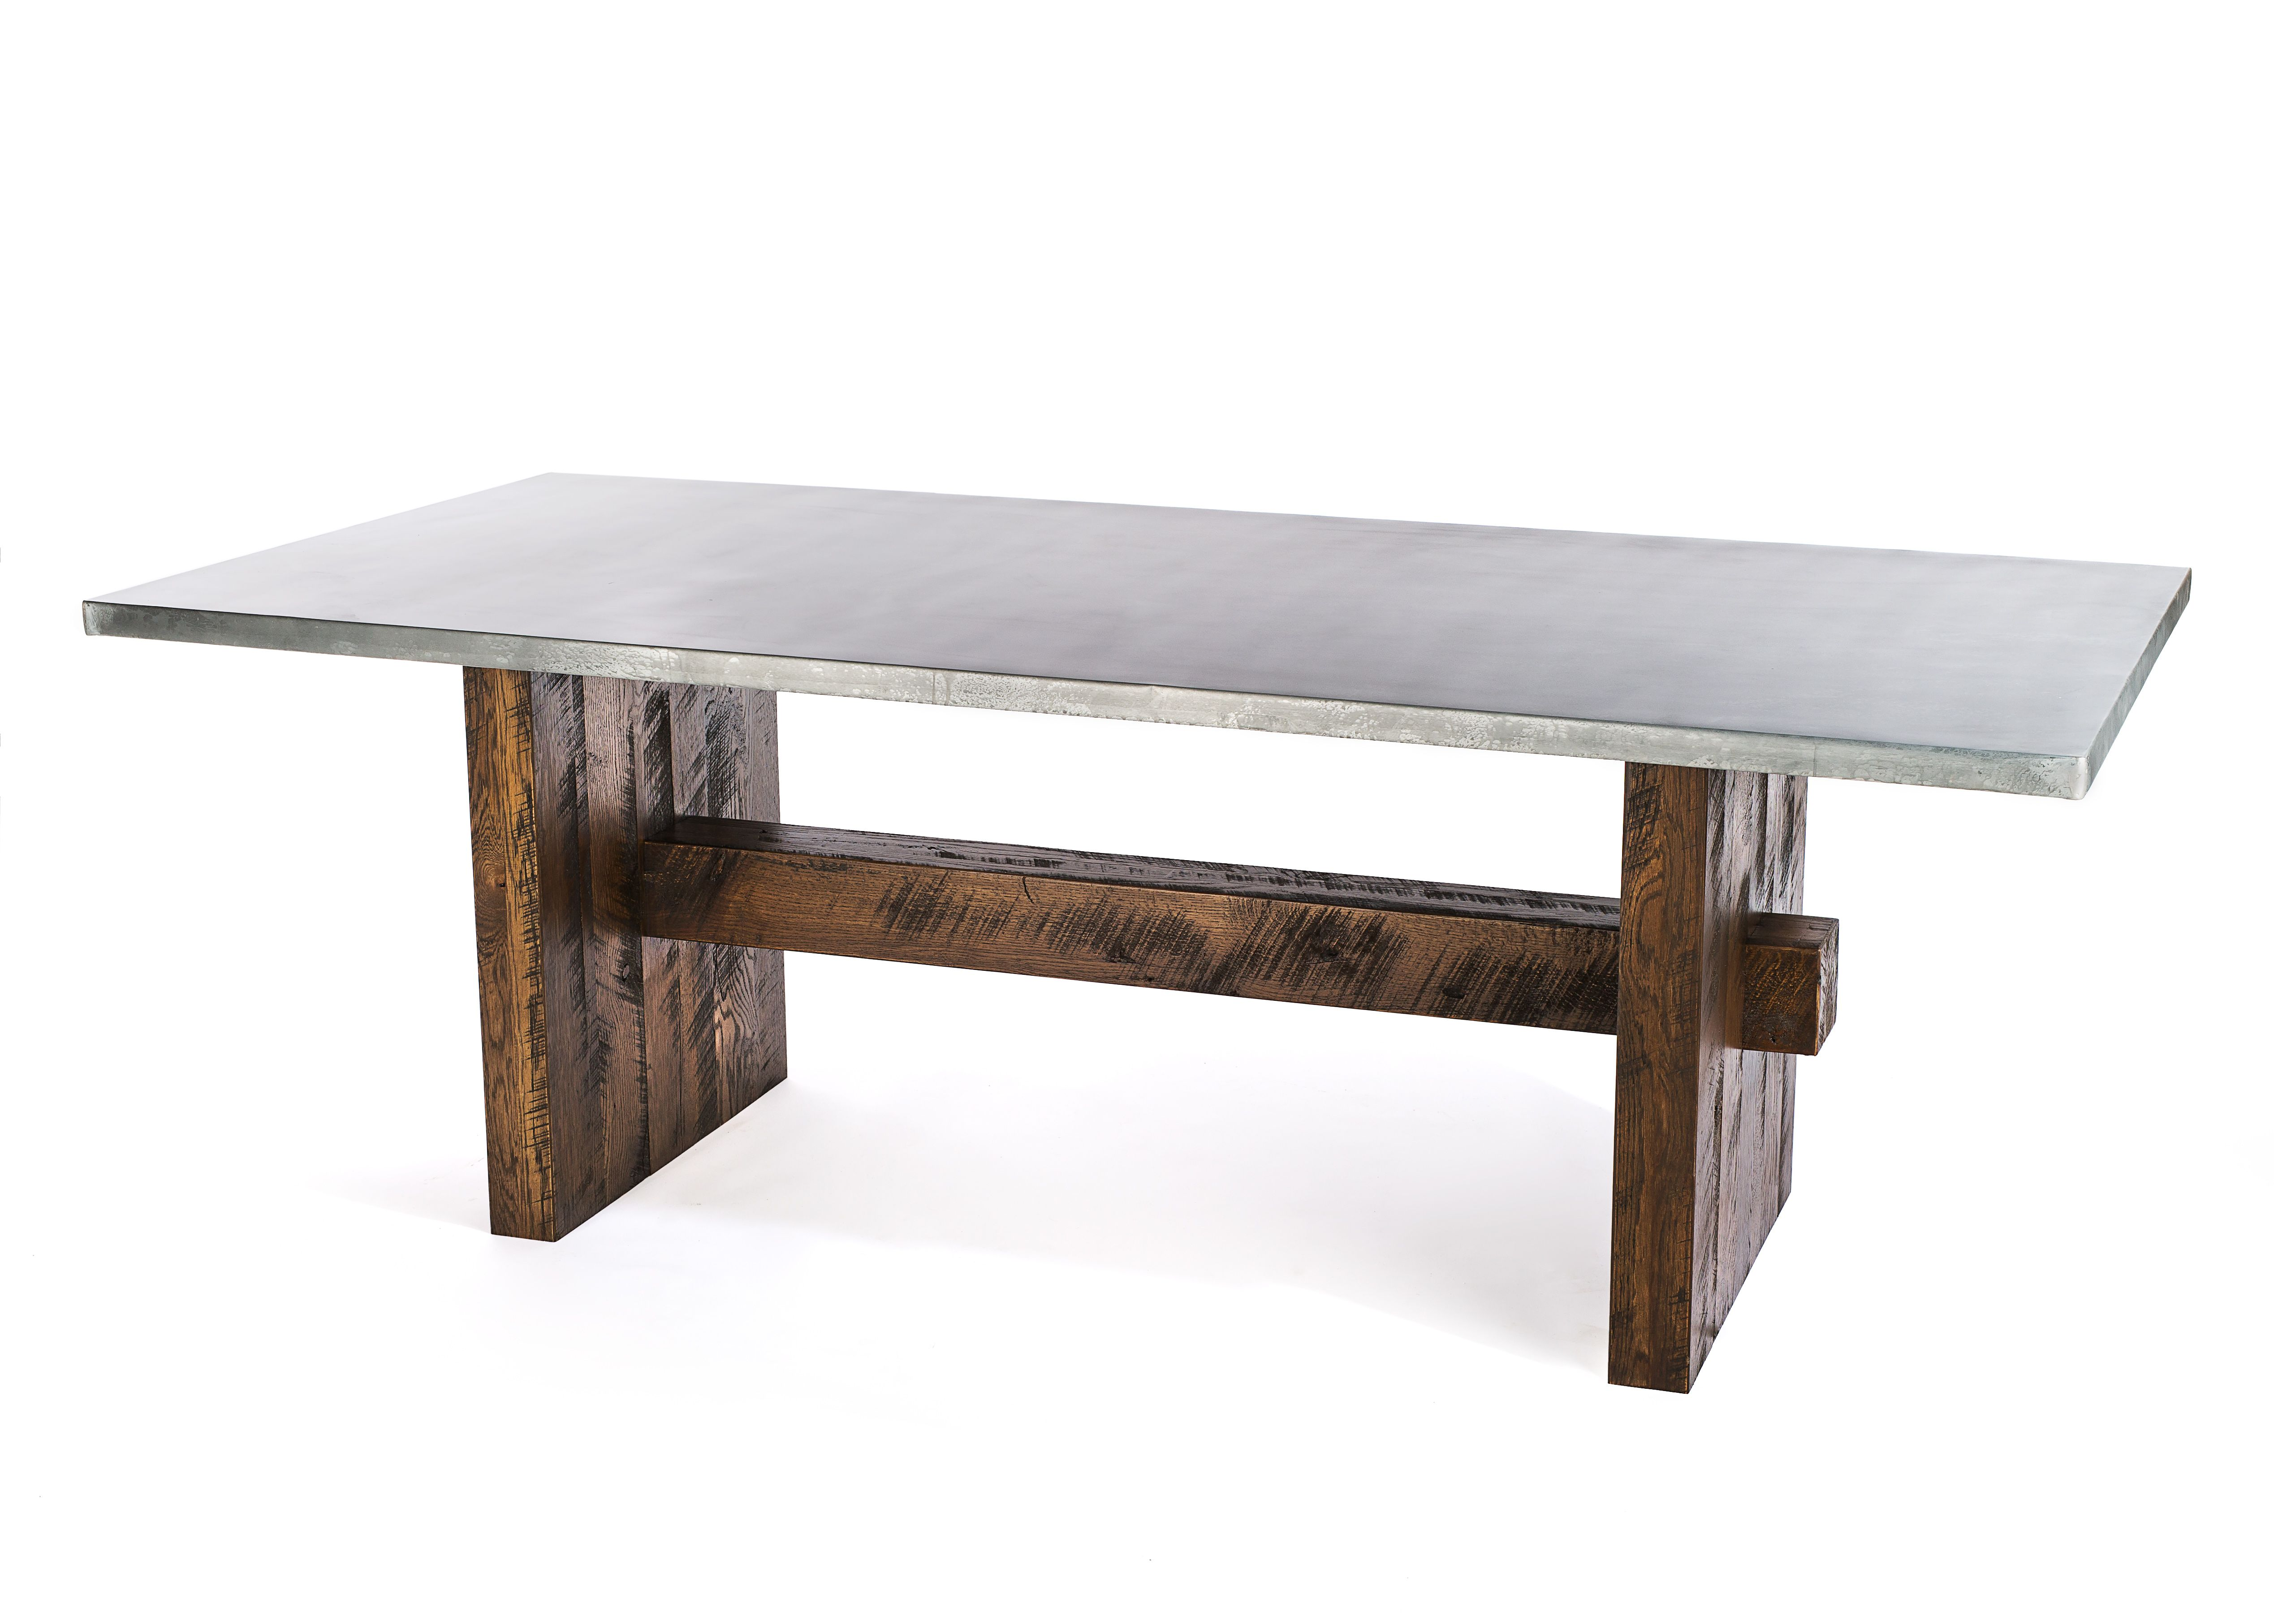 Custom Made Zinc Table Dining The Redford Rustic Trestle Top